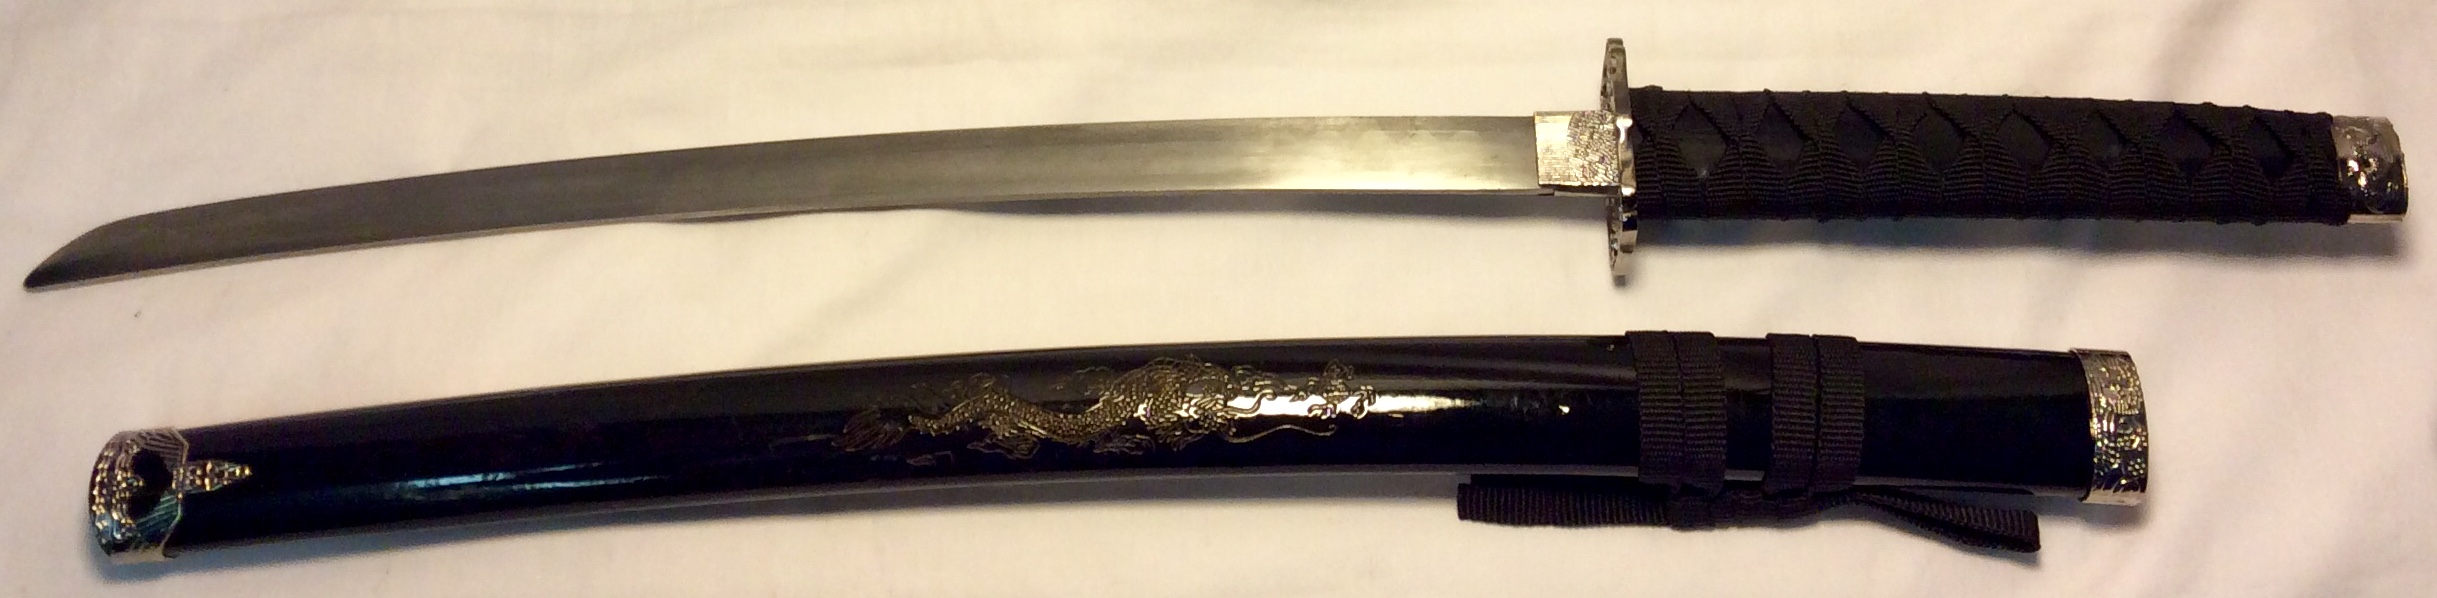 Katana with saya with gold dragon